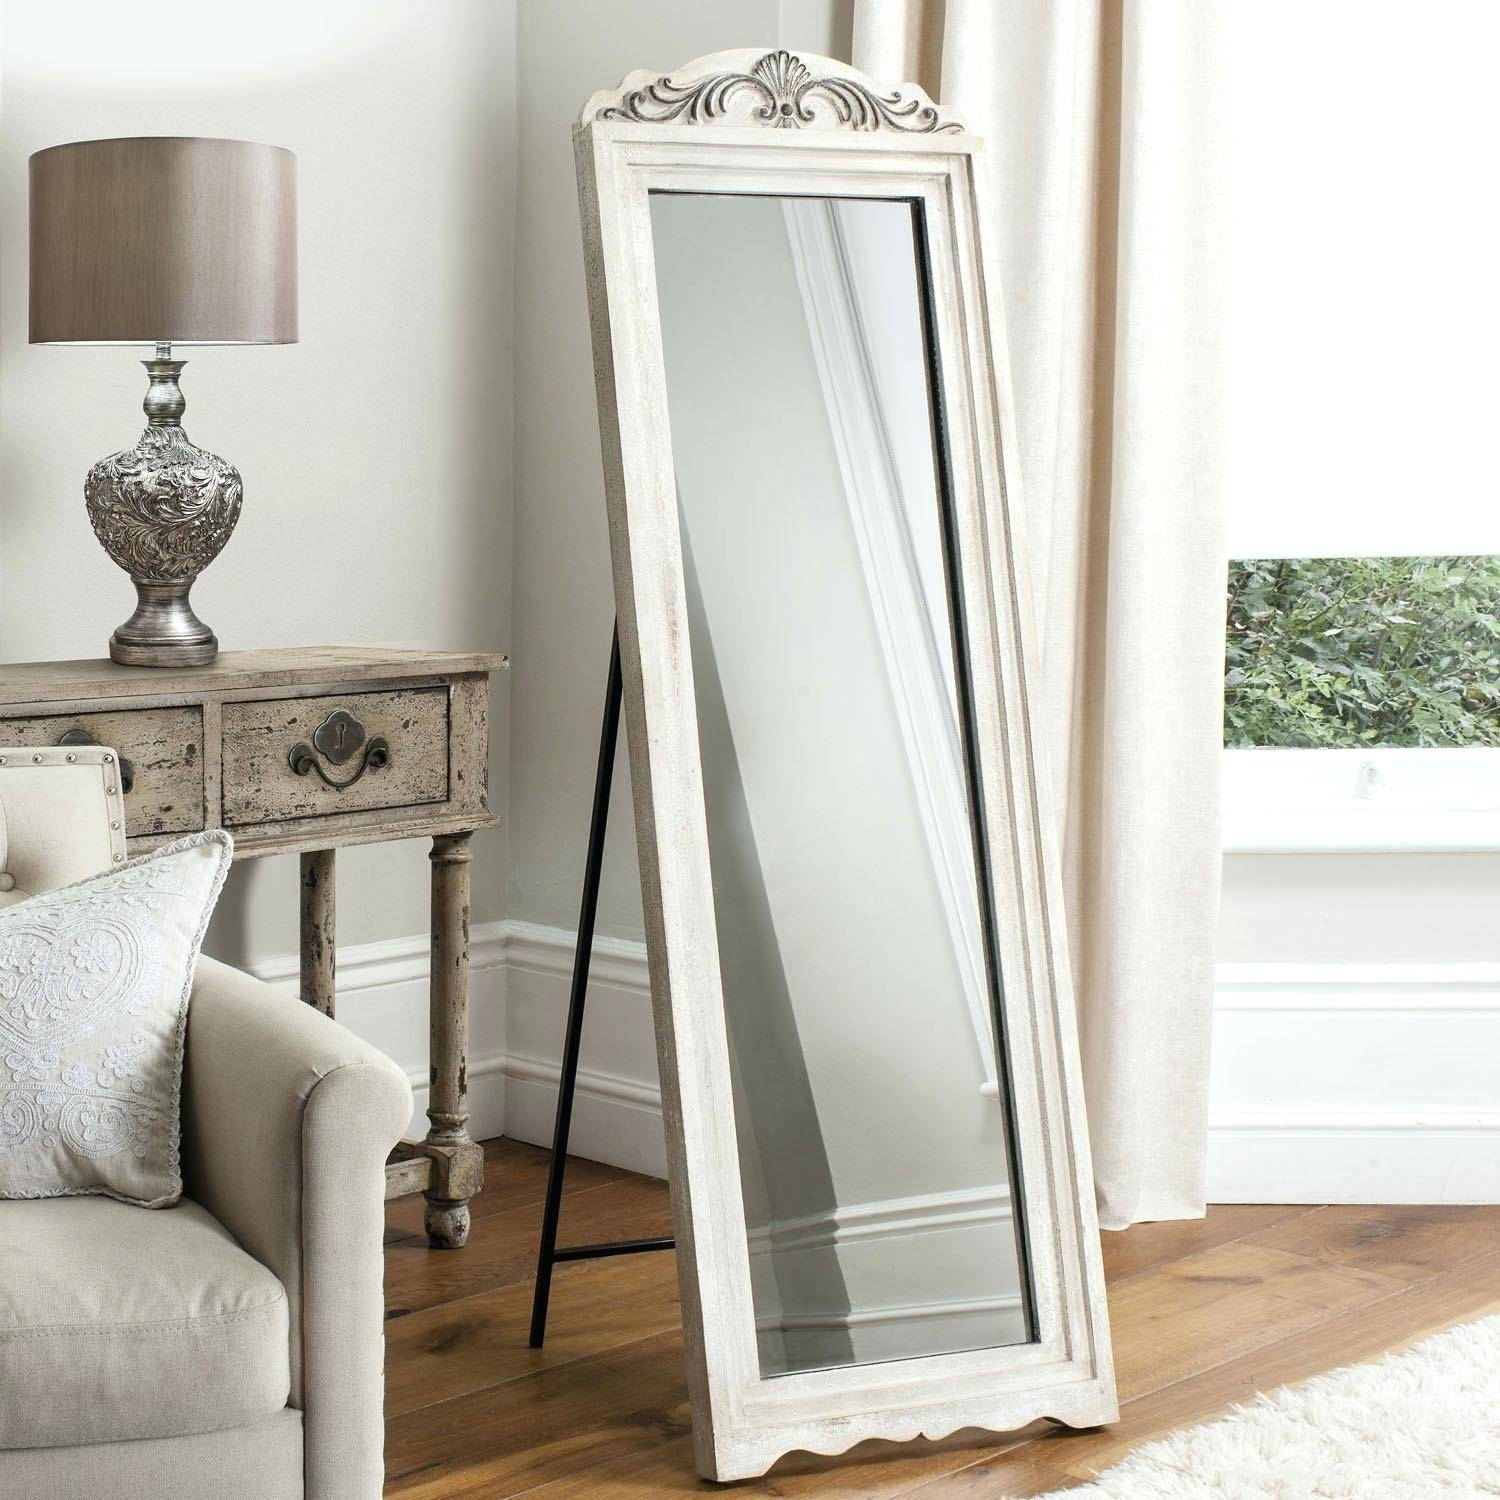 Mirror Jewelry Armoire – Abolishmcrm Regarding Black Floor Standing Mirrors (View 4 of 15)